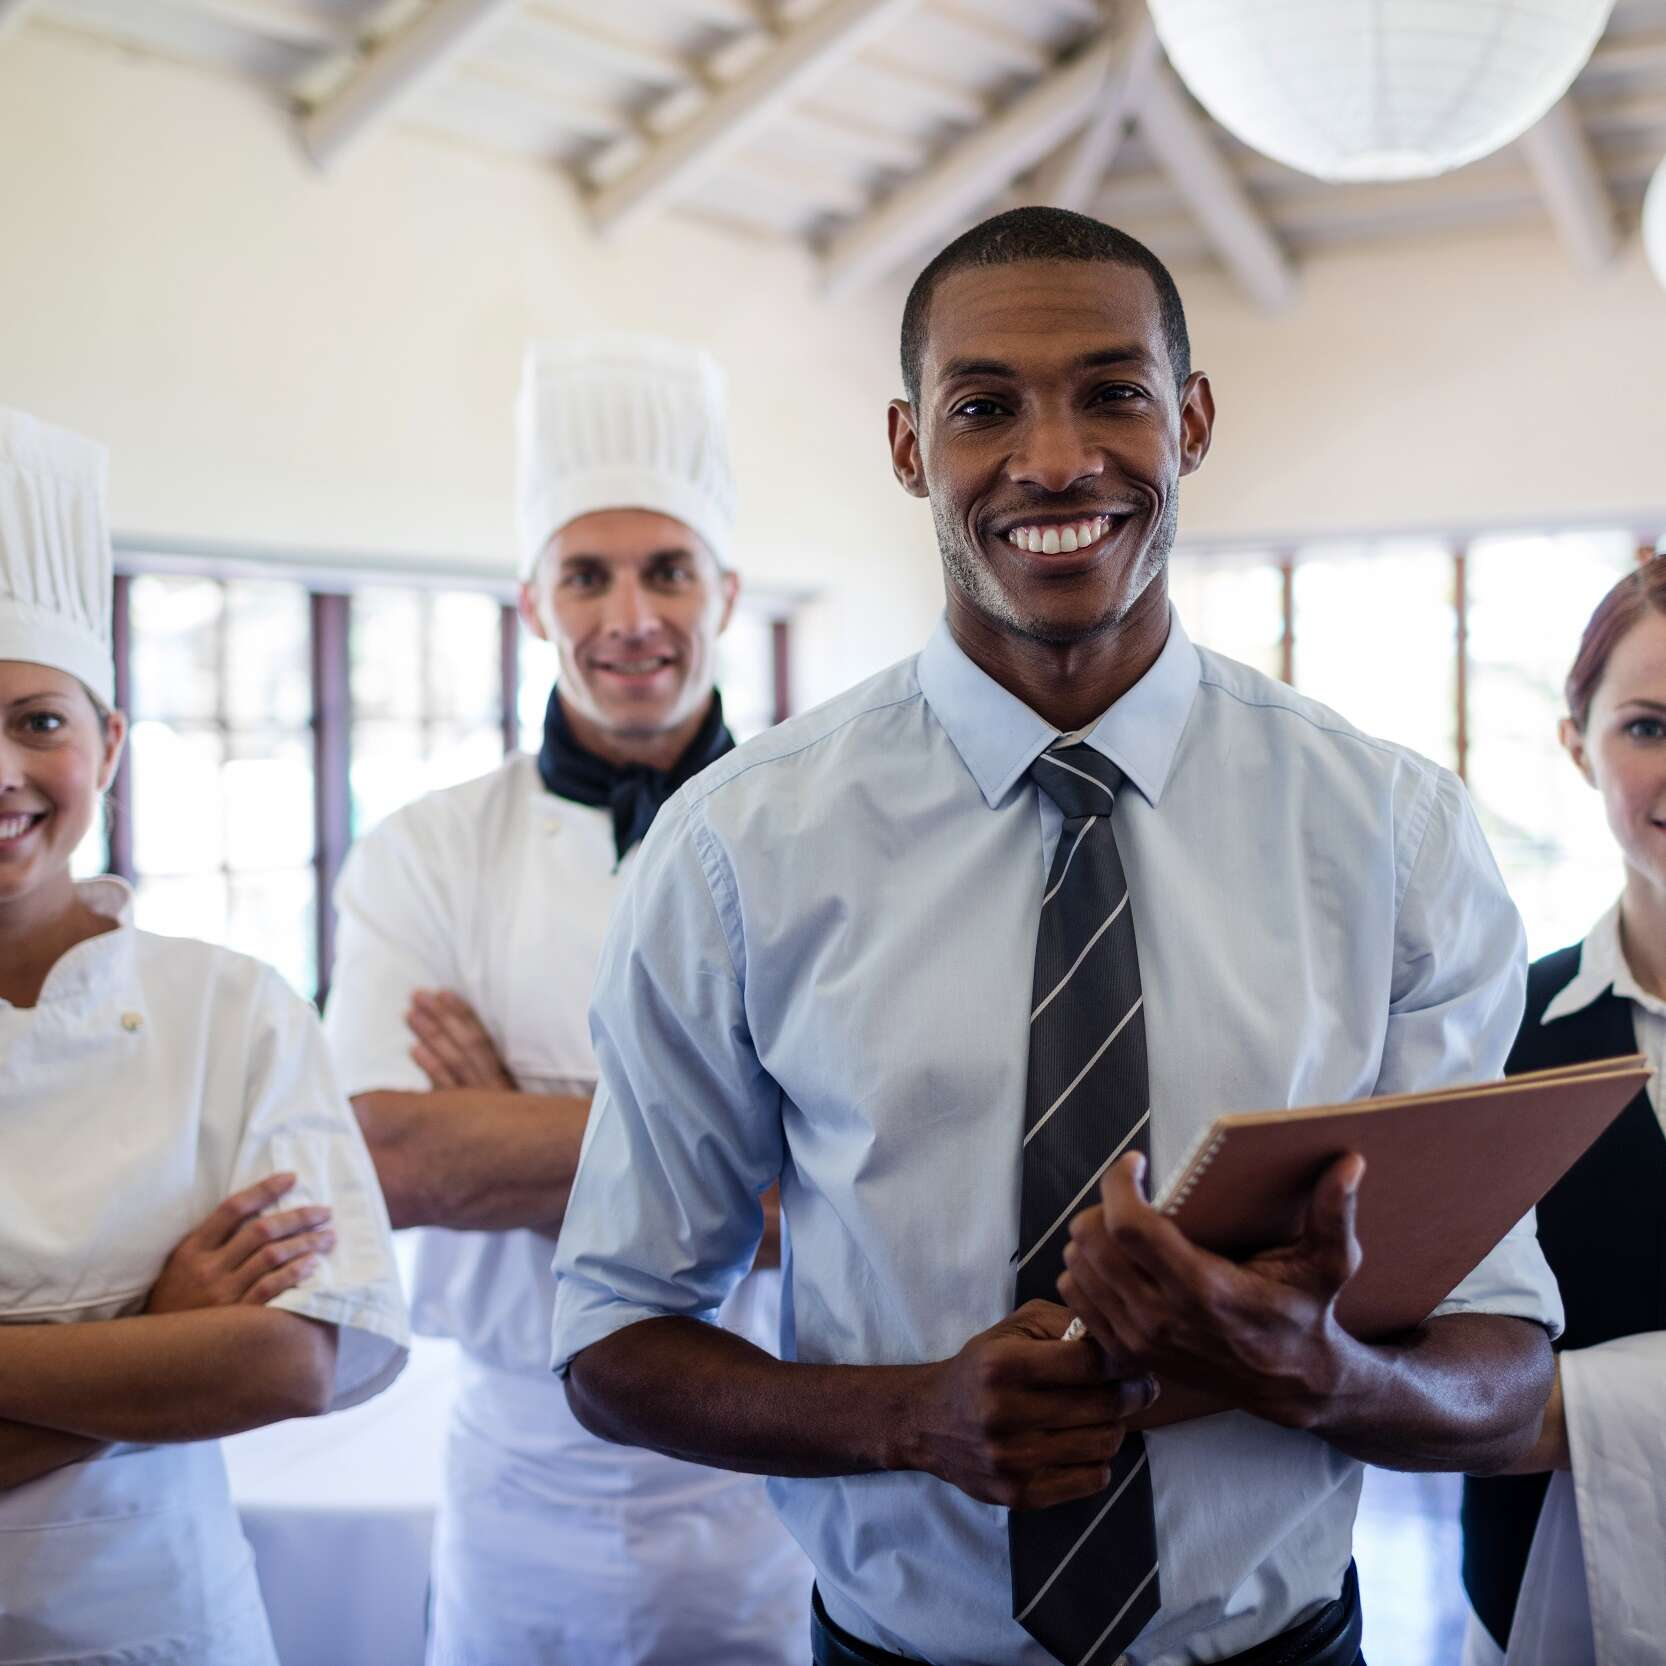 Group of happy hotel staffs standing in hotel